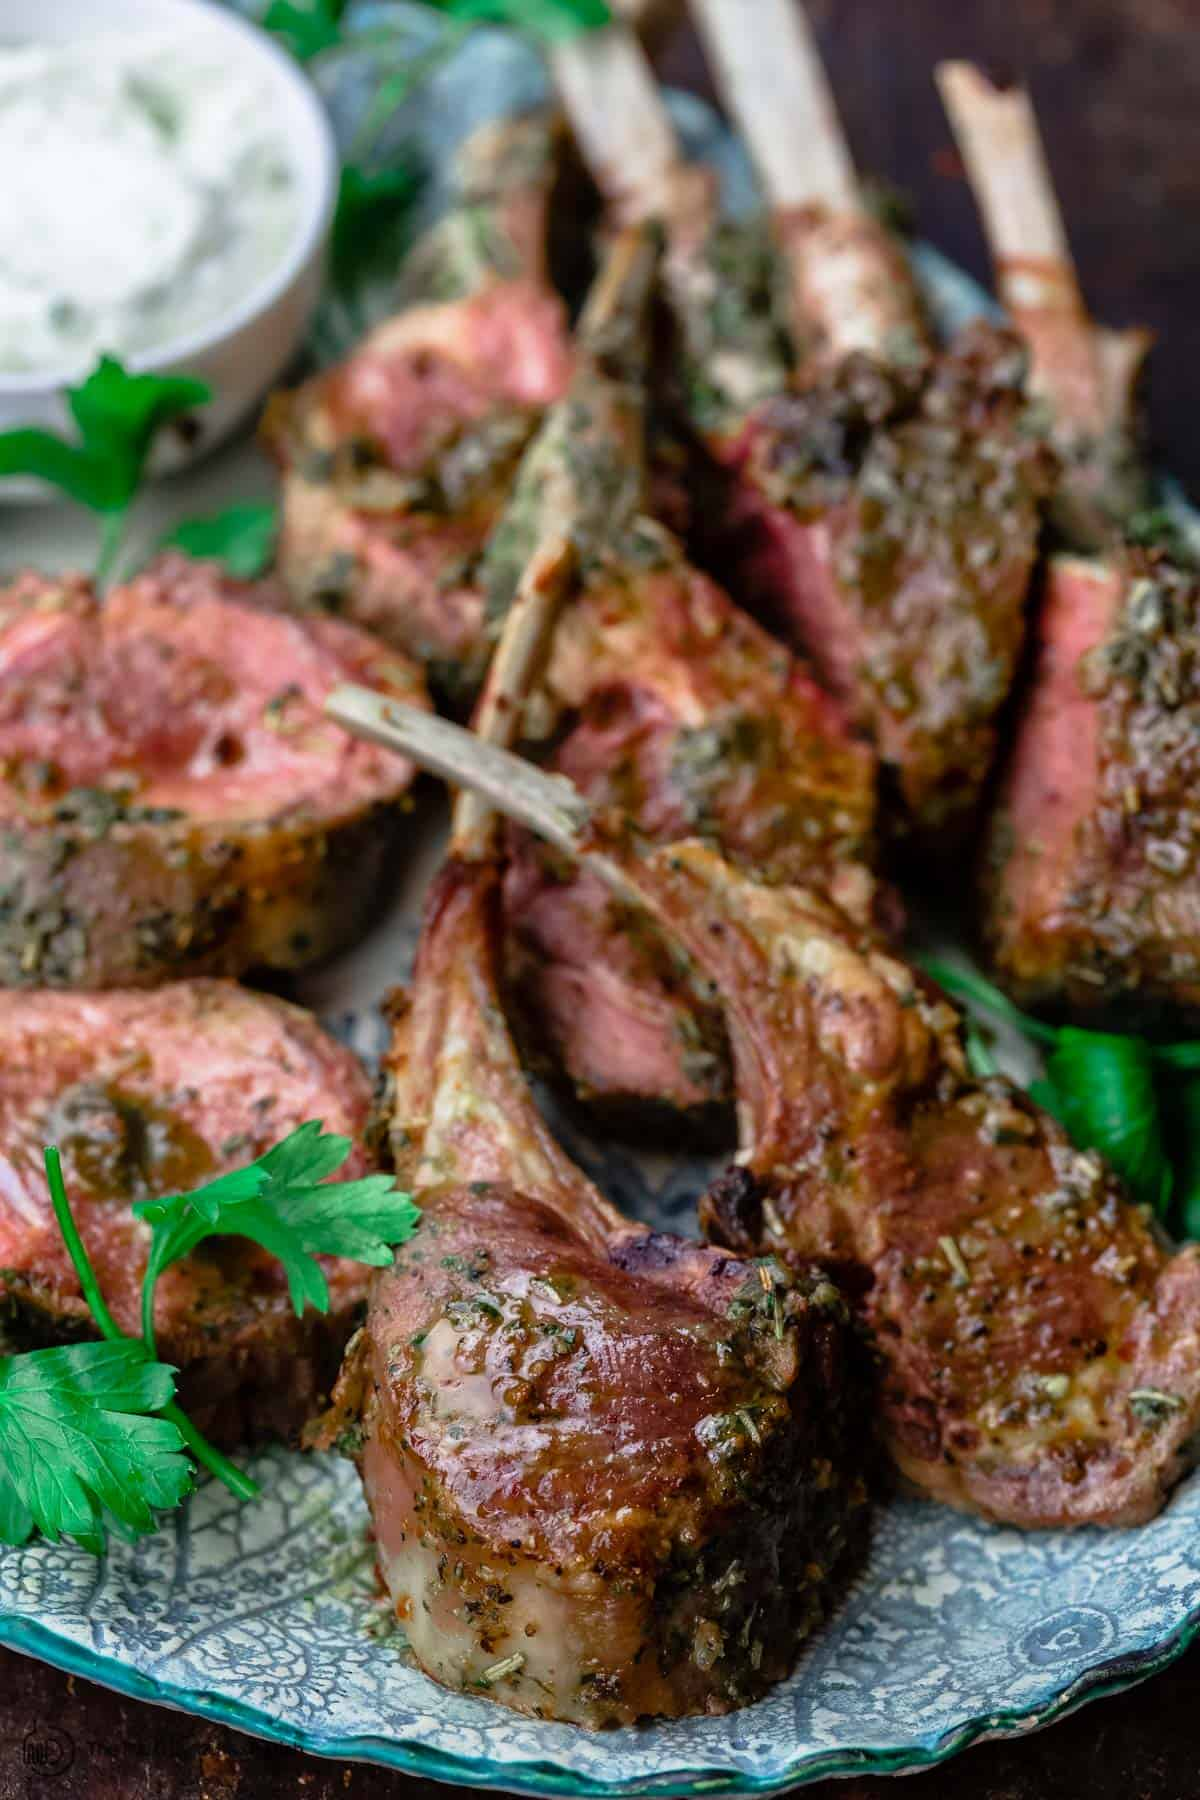 Roast Rack of Lamb cut into chops with a side of tzatziki sauce